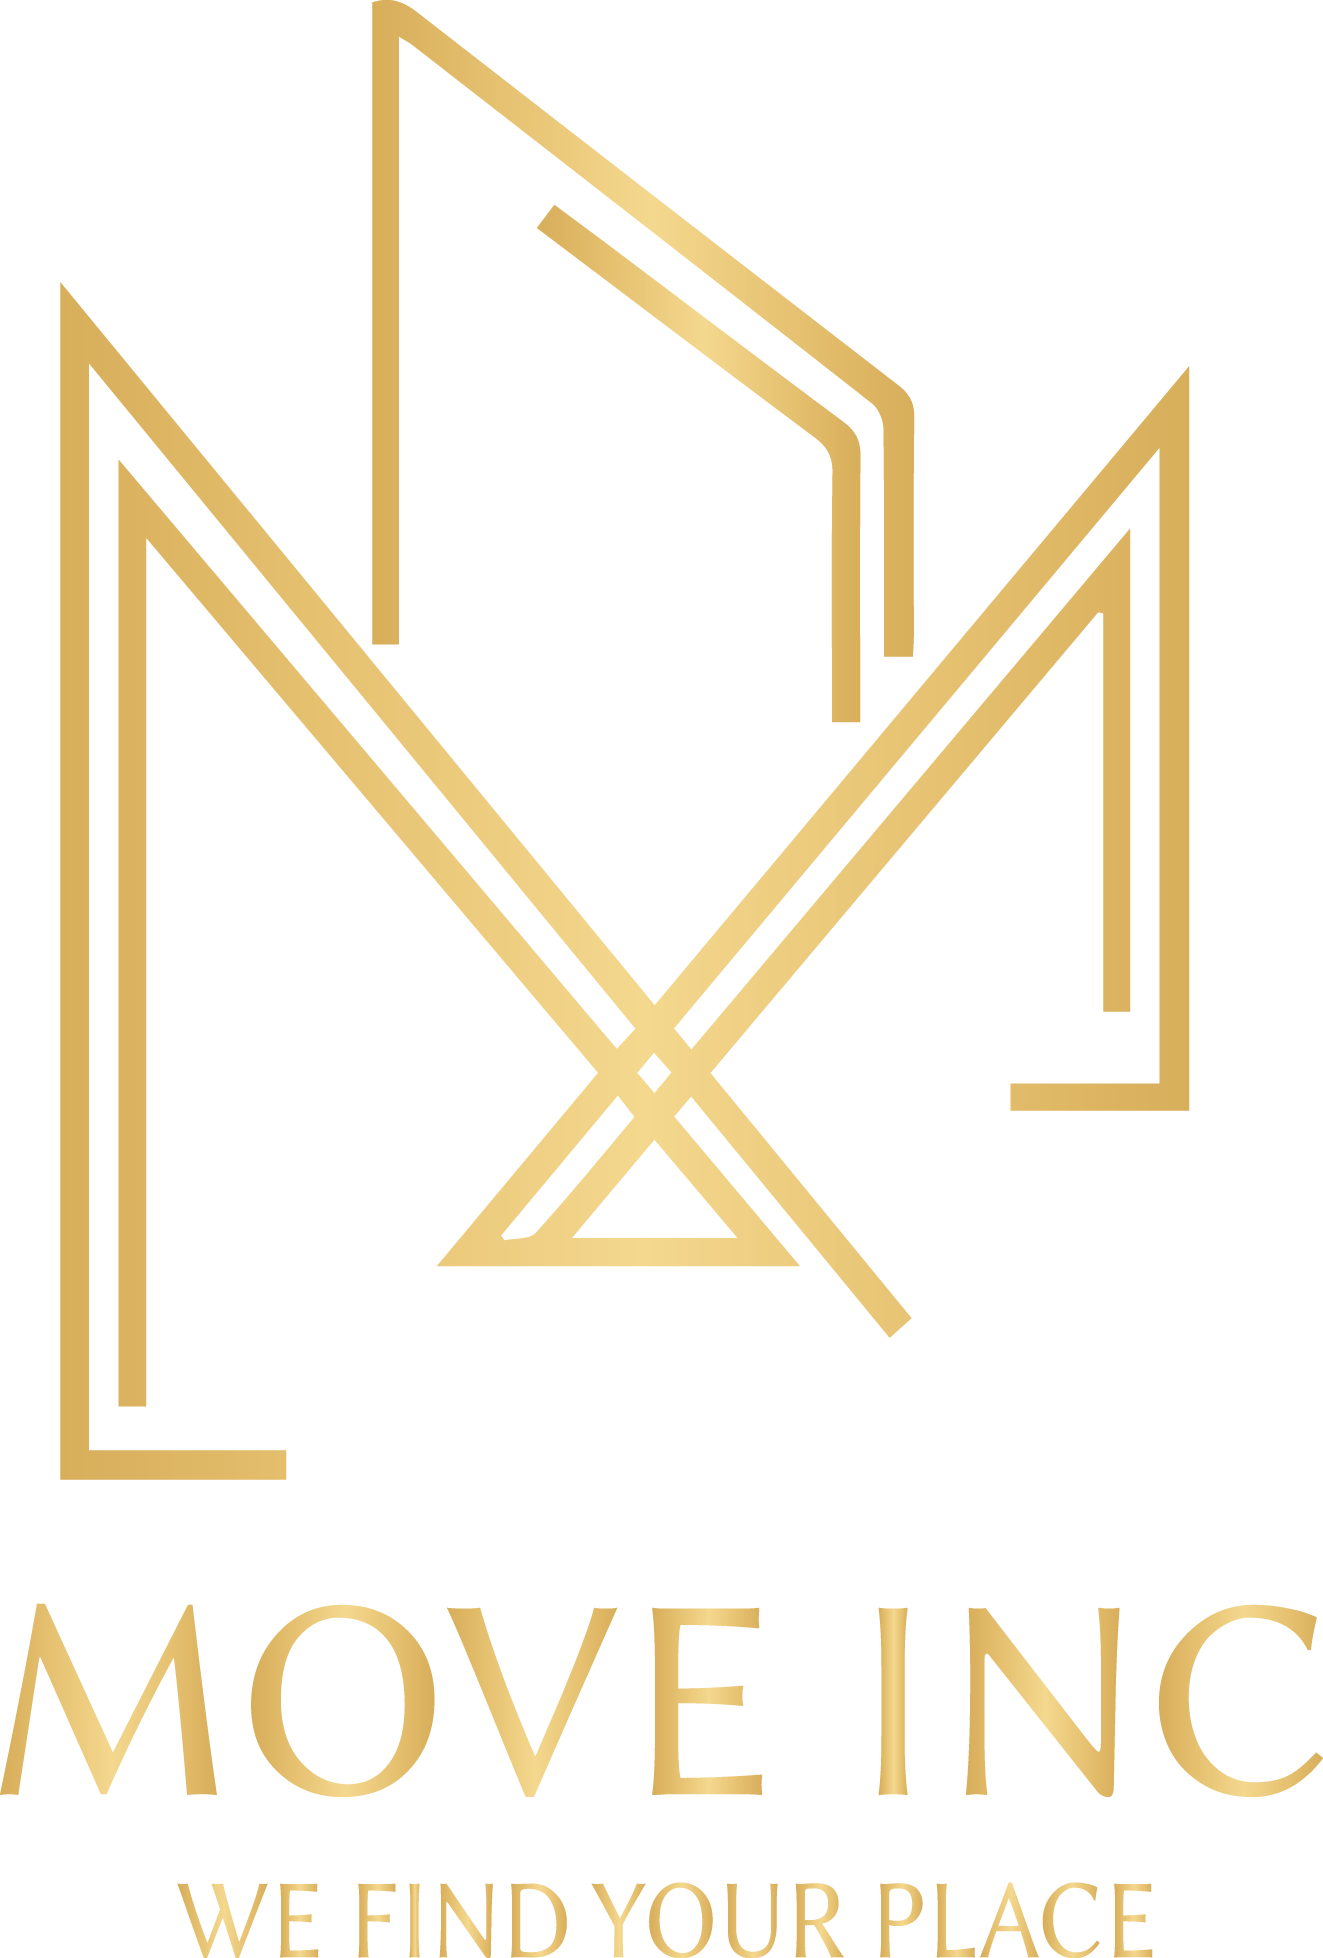 LOGOTIPO_MOVEINC_TRANSPARENTE.png